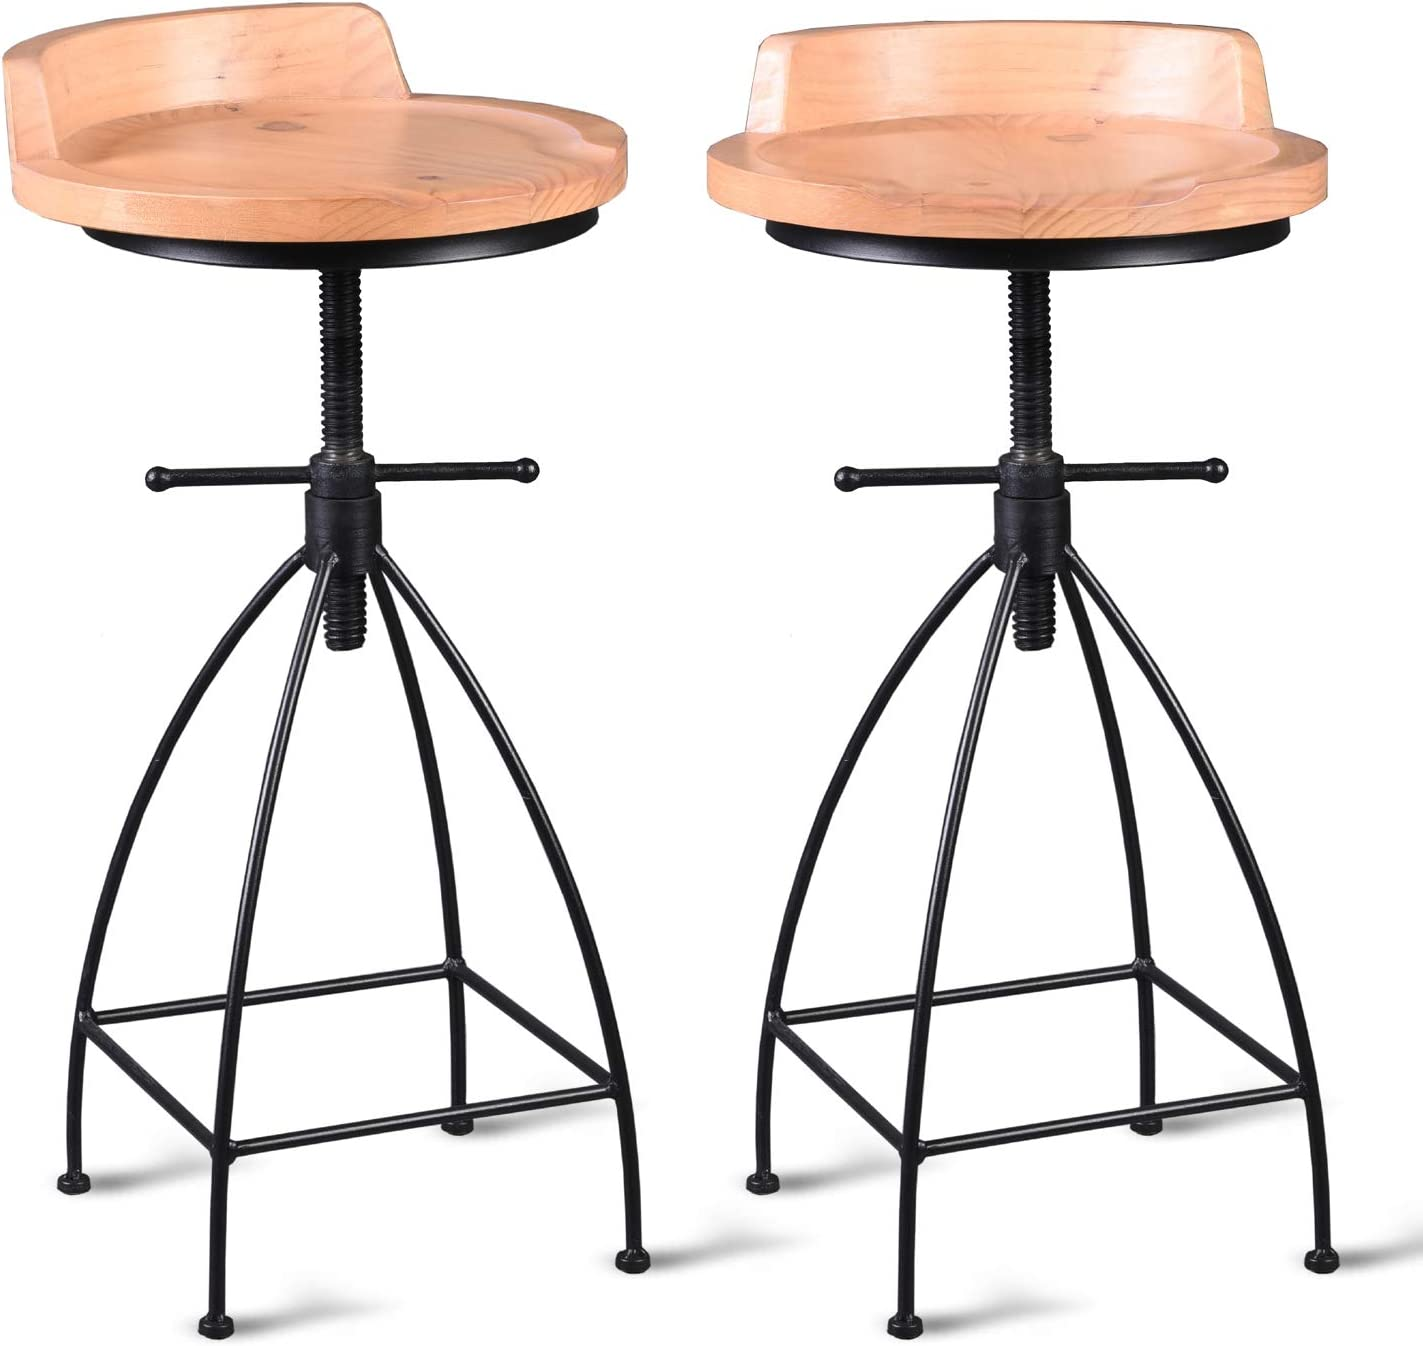 Diwhy Industrial Vintage Rustic Bar Stool,Wooden Top Stool Kitchen Counter Height Adjustable ,Cast Iron Stool with Metal legs,Swivel Stool,24 Inch,Low Backrest,Fully Welded Set of 2 (Light Wood Color)